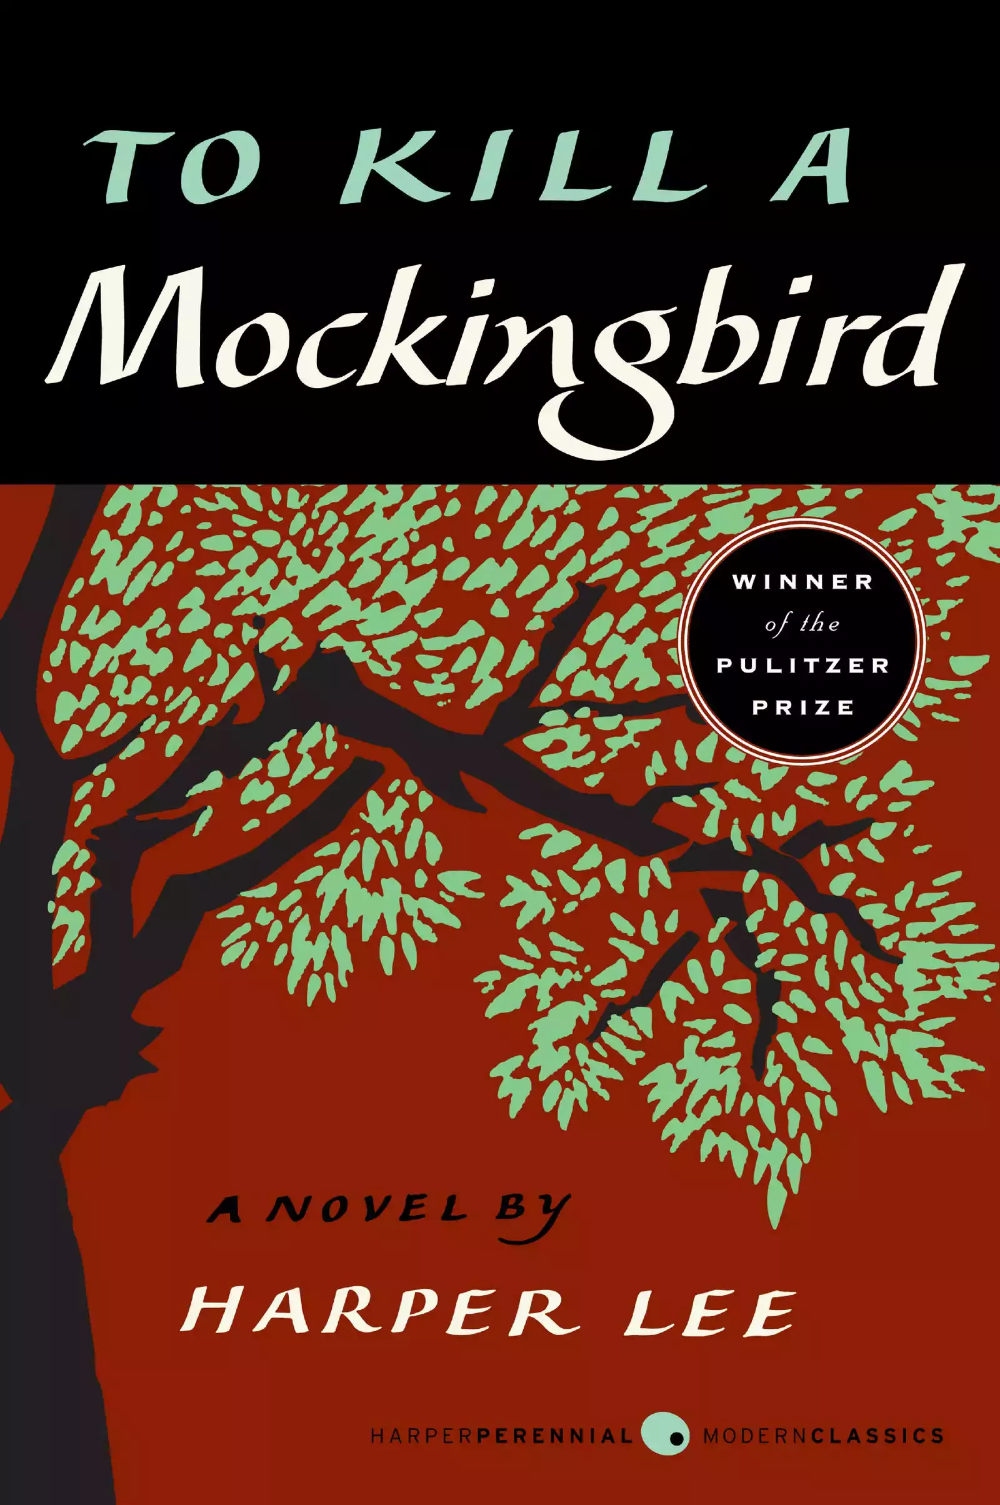 5 Classic Novels Everyone Should Read is part of Harper lee books, Harper lee, To kill a mockingbird, Novels, Book sites, Ebook - Forget lengthy lists of 100 classic novels you must read—these five novels are the ones you should put on your short list of mustreads